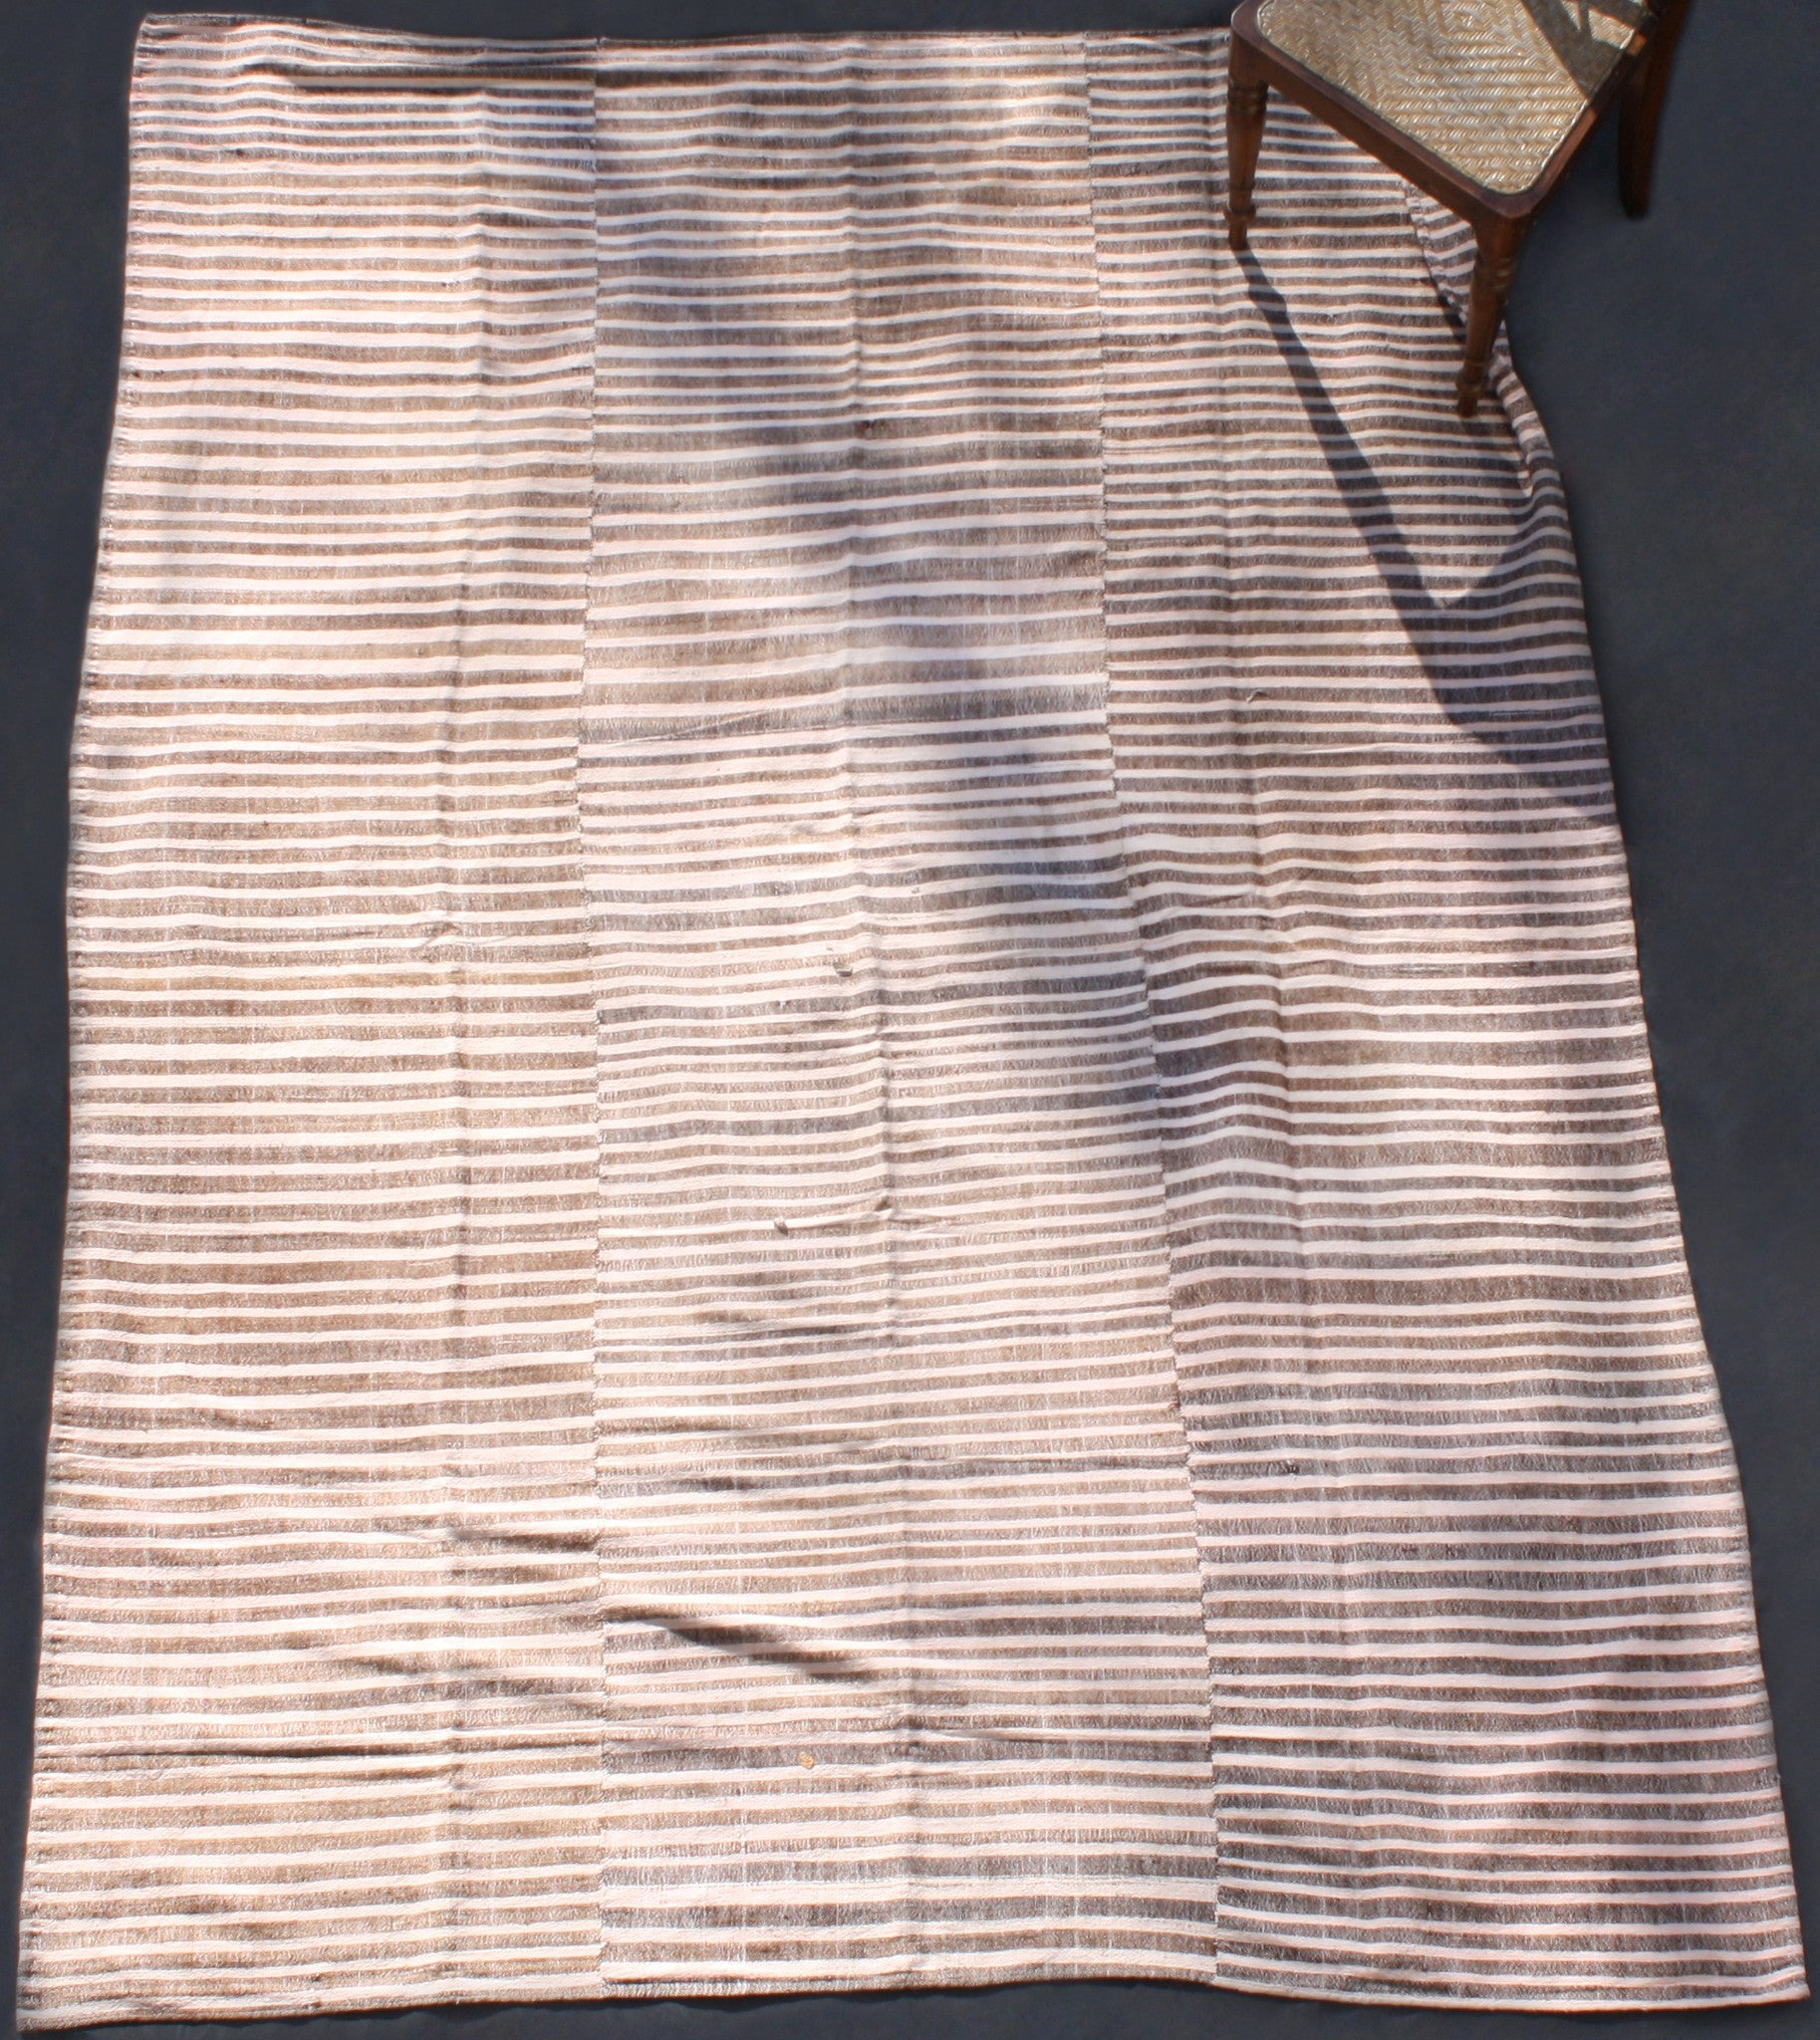 Wool Mersin With Natural Brown And Pale Rose Stripes From North Iran